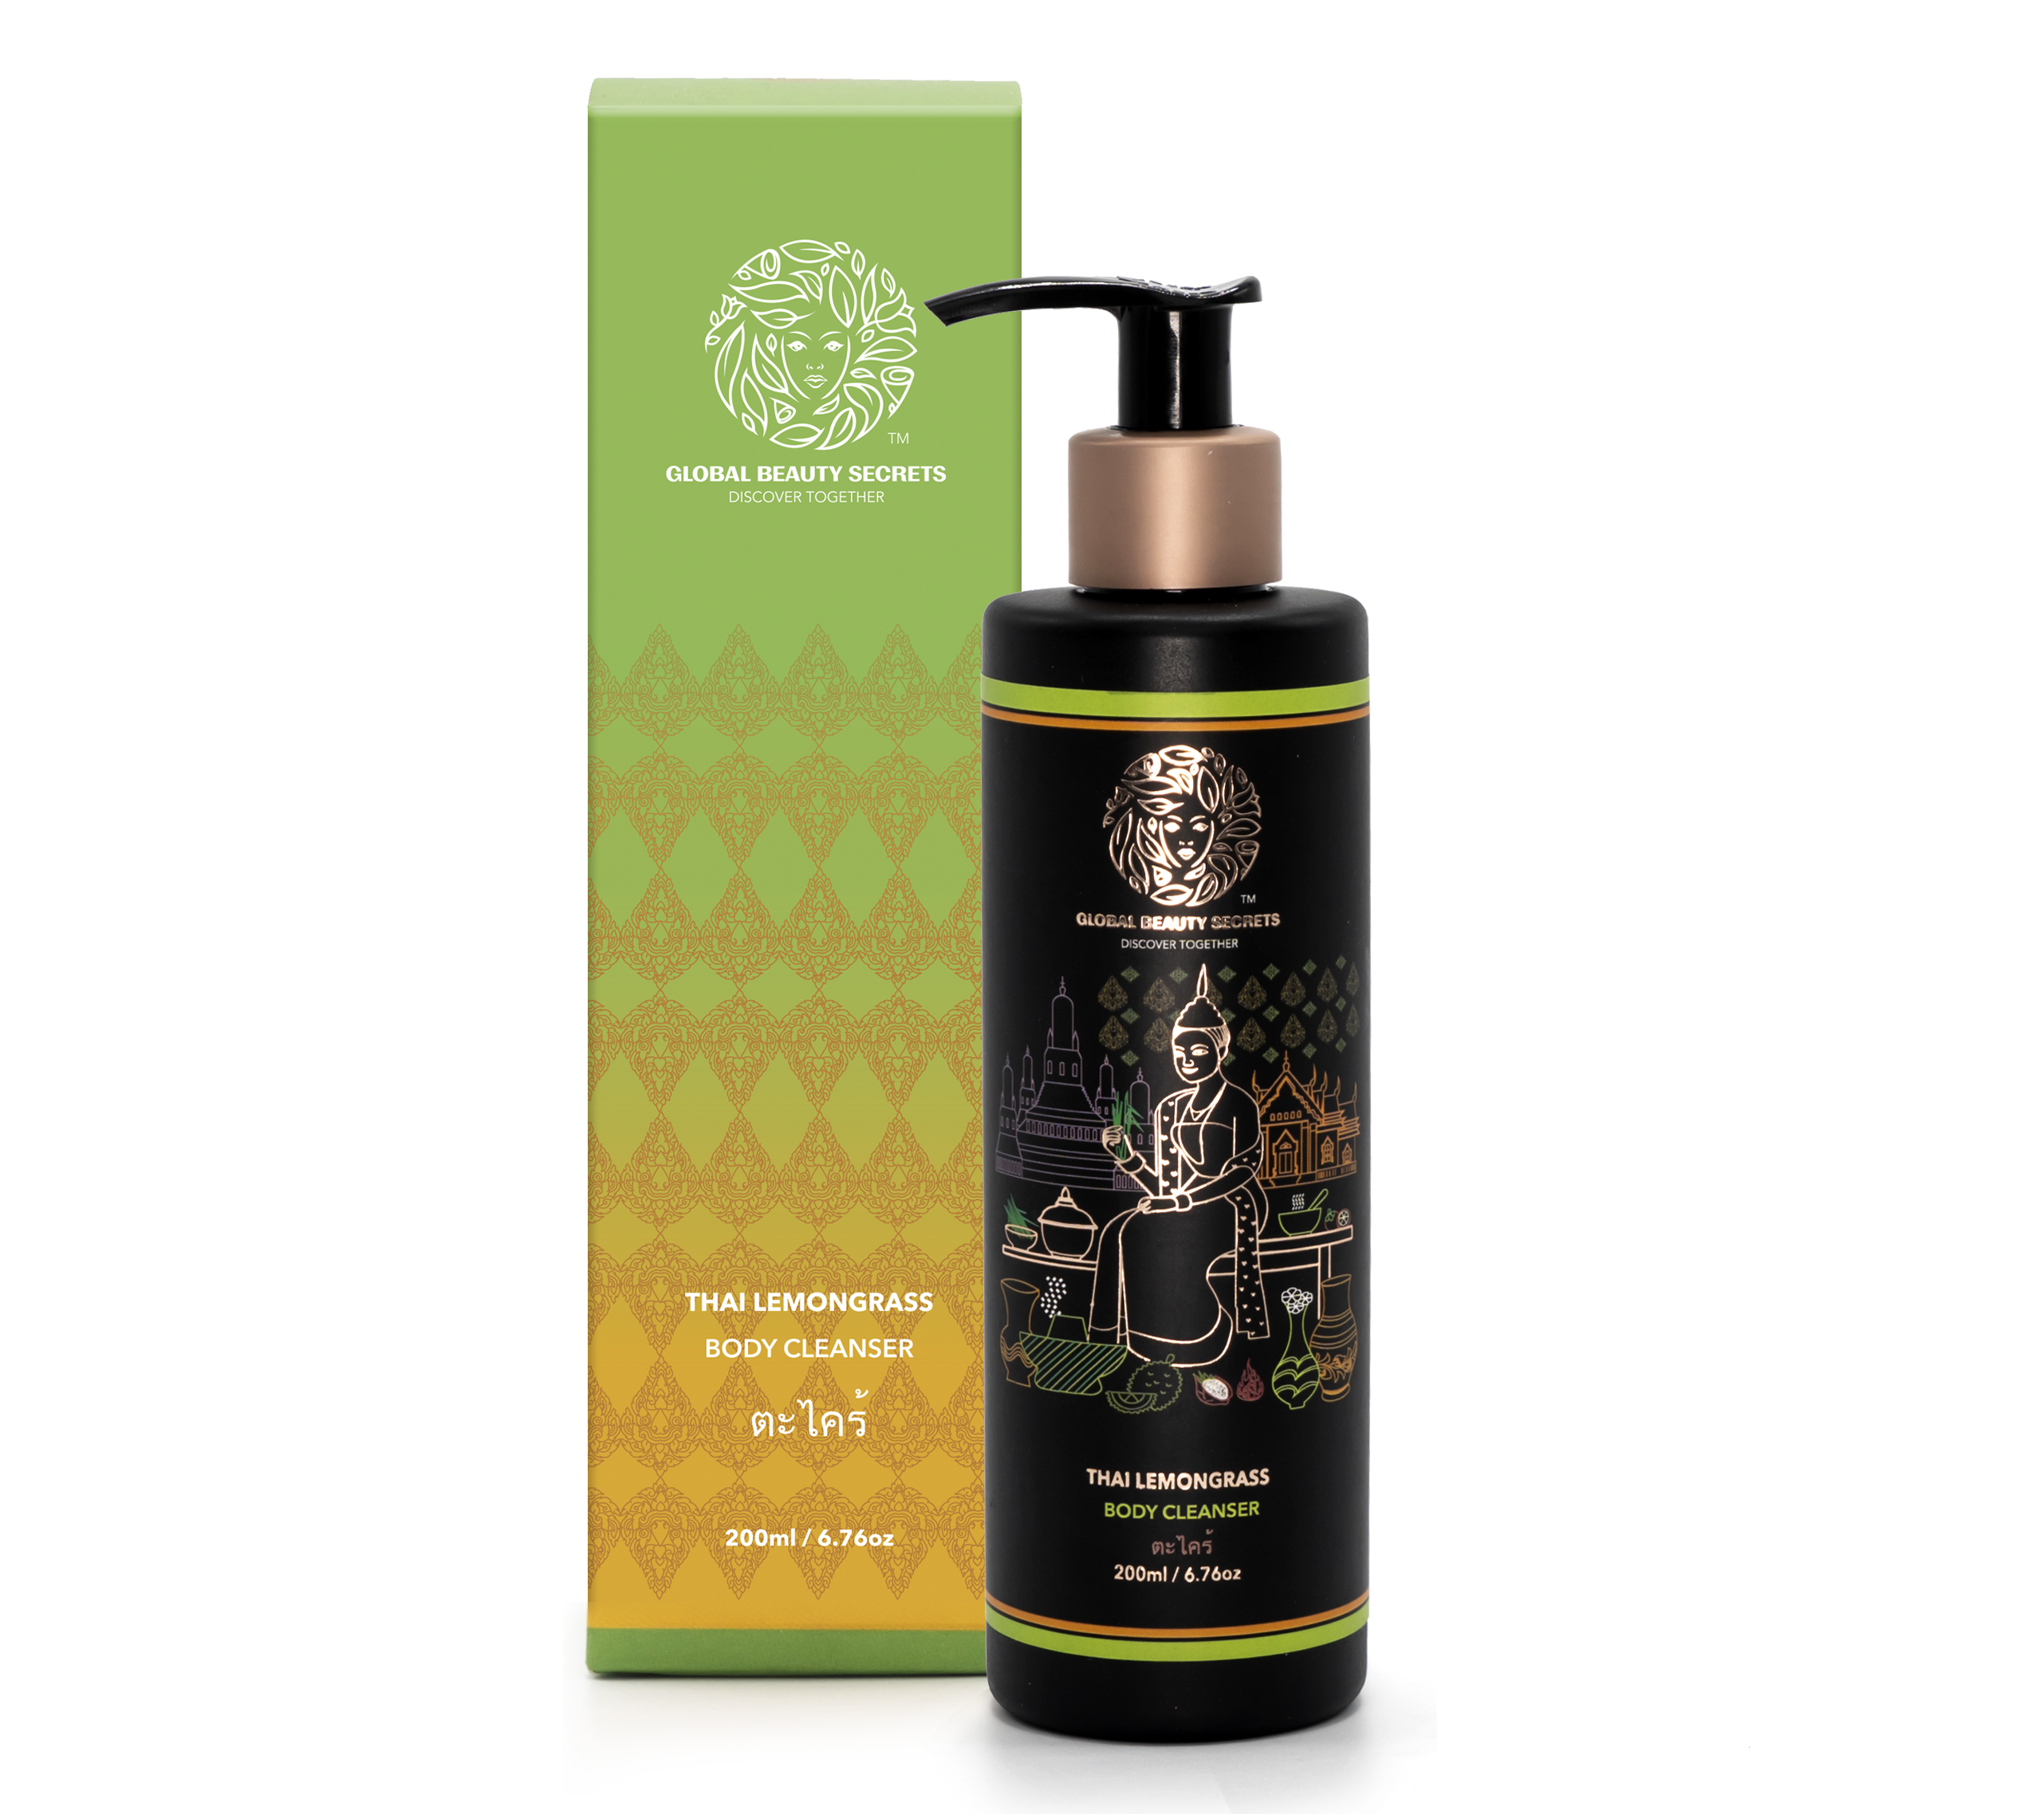 Thai Lemongrass Body Cleanser by Global Beauty Secrets